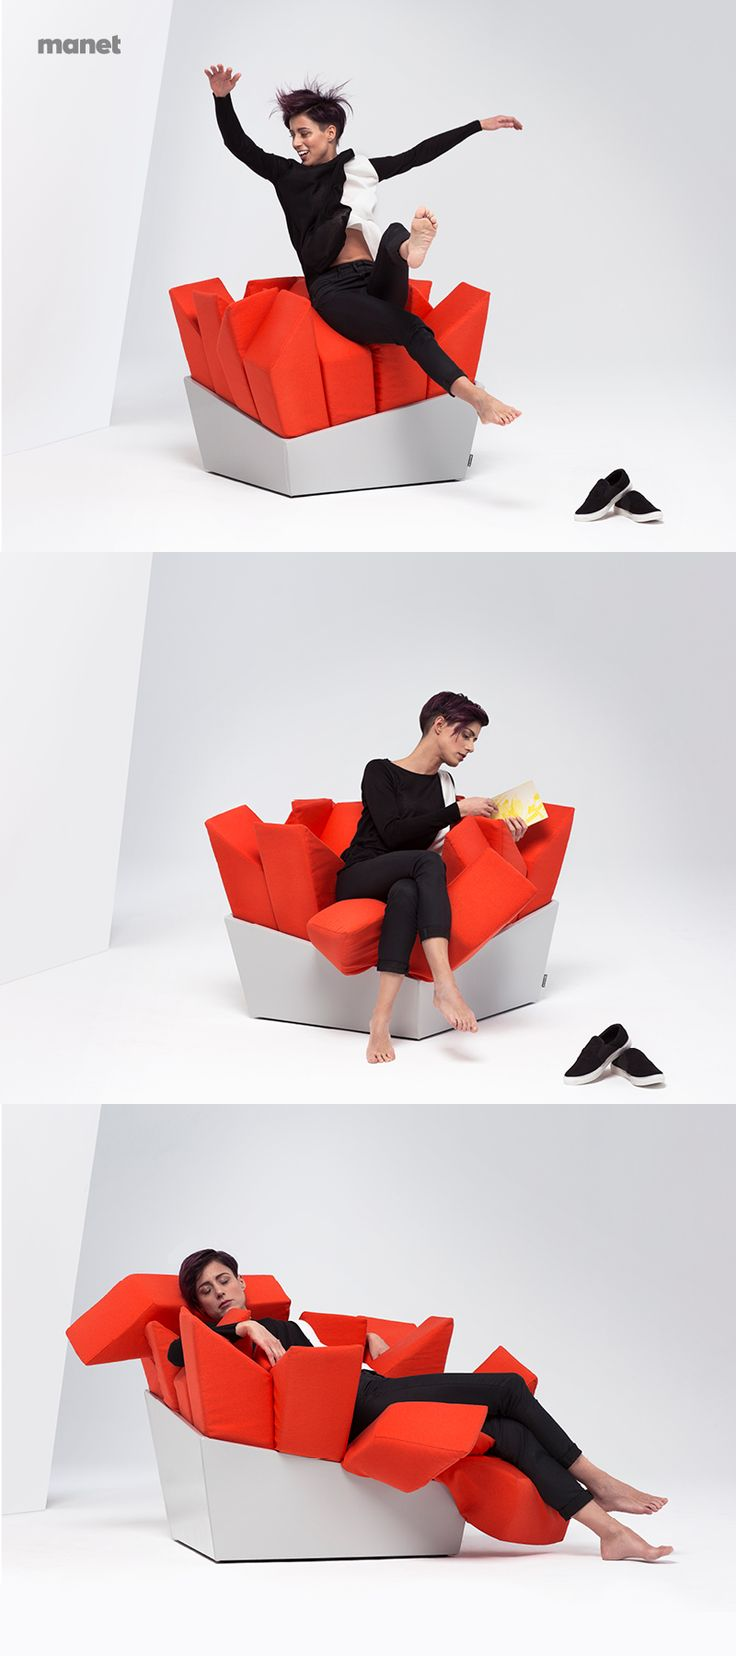 MANET Easy Chair MANET is thought to give you the feeling of a soft embrace, providing you with the maximum freedom of movement at the same time.  Jump in, make it your destination for a good reading time or spread its pillows under your body before taking a nap.